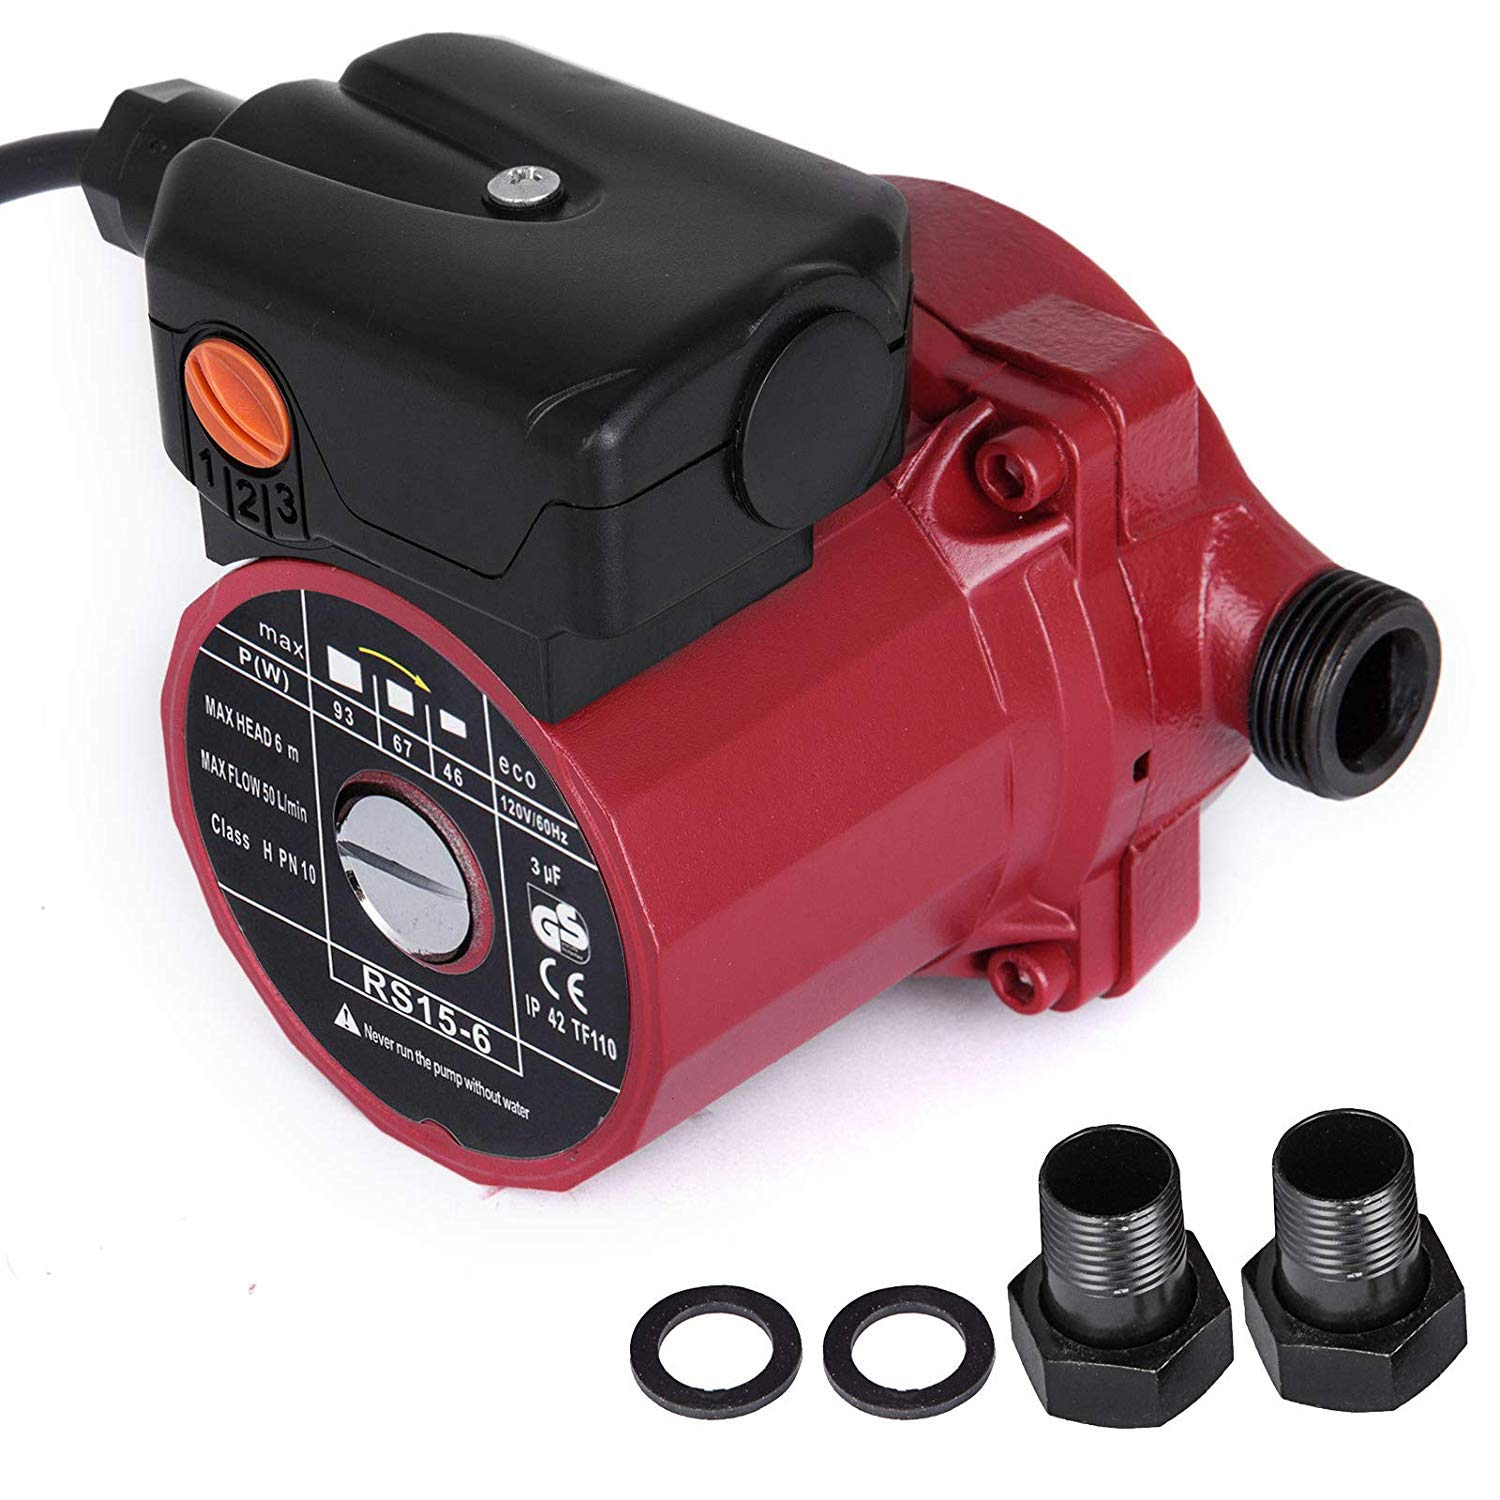 Happybuy RS15-6 Hot Water Recirculating Pump 110V Circulation Pump 0.75 inches NPT 3-speed Recirculation Pump 9.5 Gpm for Water Heater System by Happybuy (Image #1)